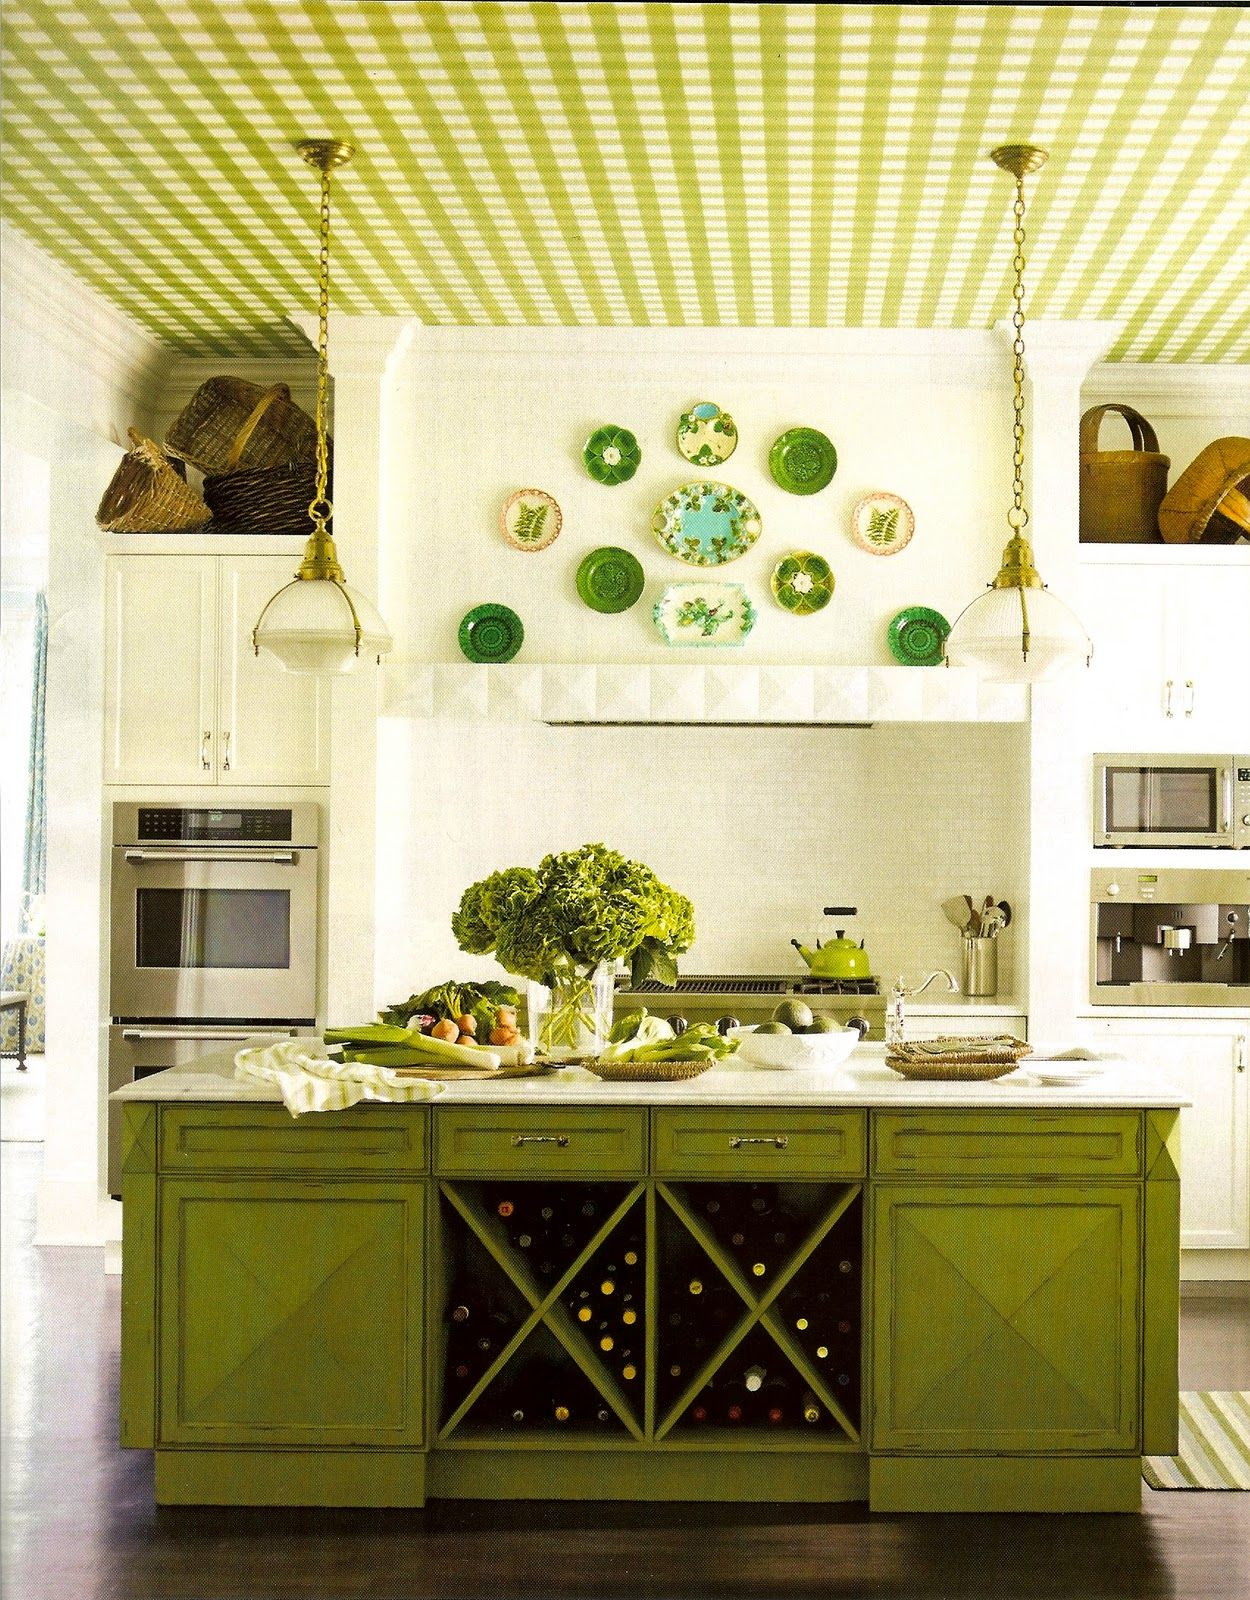 Vintage green kitchen design with small kitchen island and olive ...